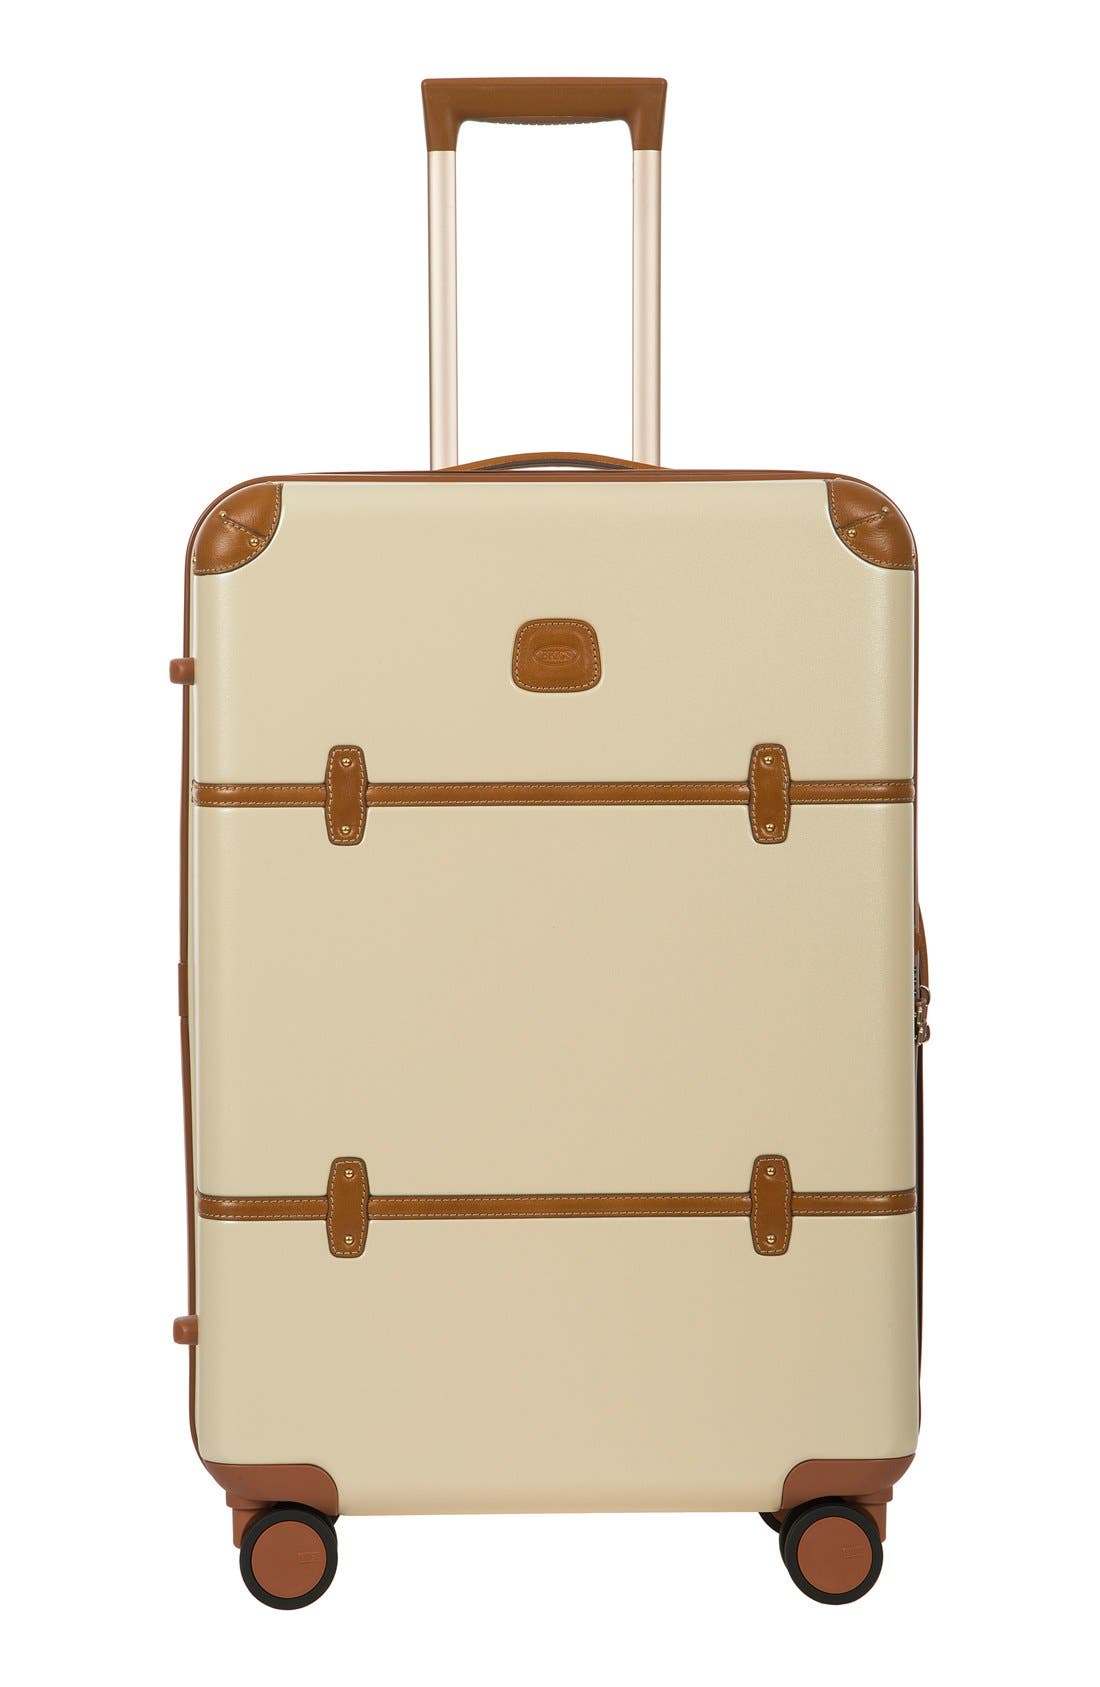 Alternate Image 1 Selected - Bric's Bellagio 2.0 27 Inch Rolling Spinner Suitcase